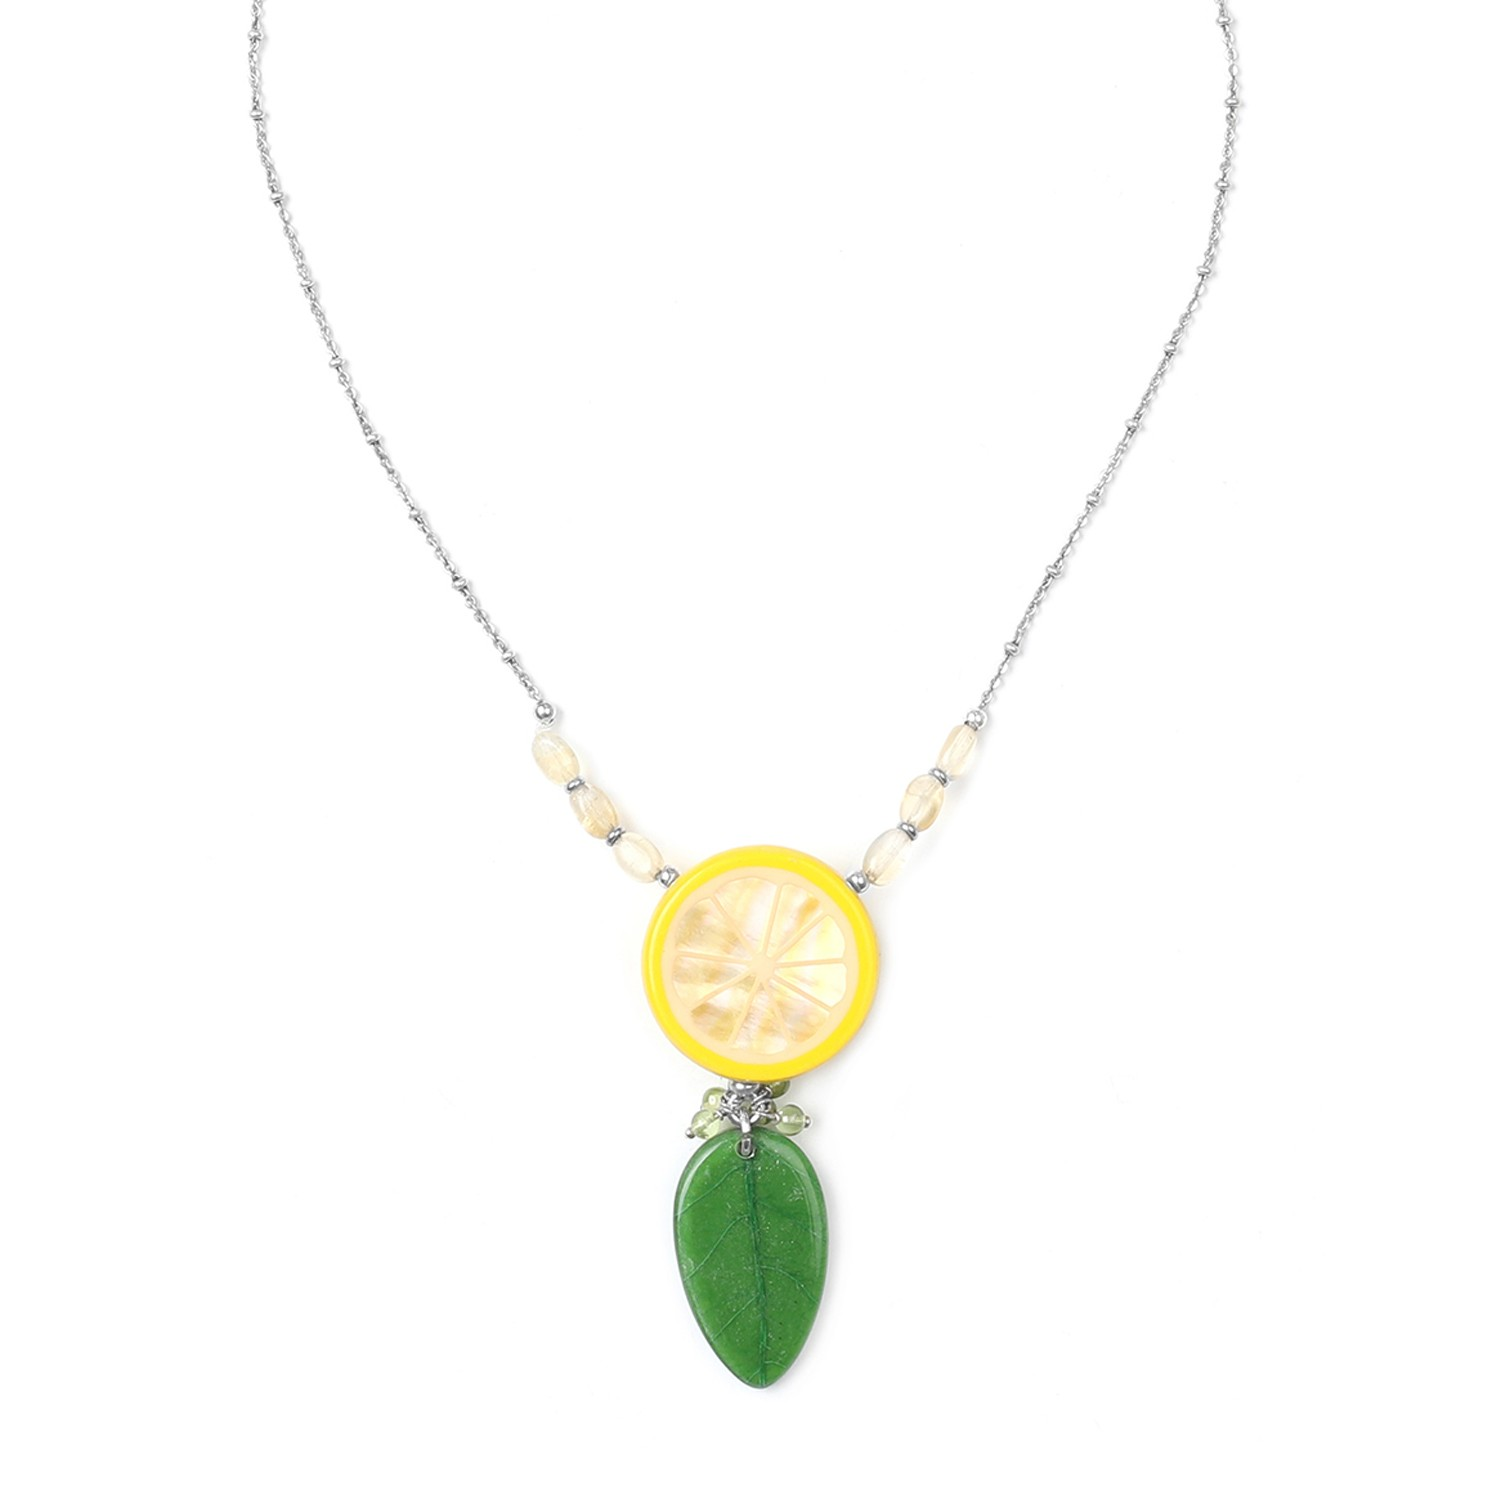 CITRUS small necklace